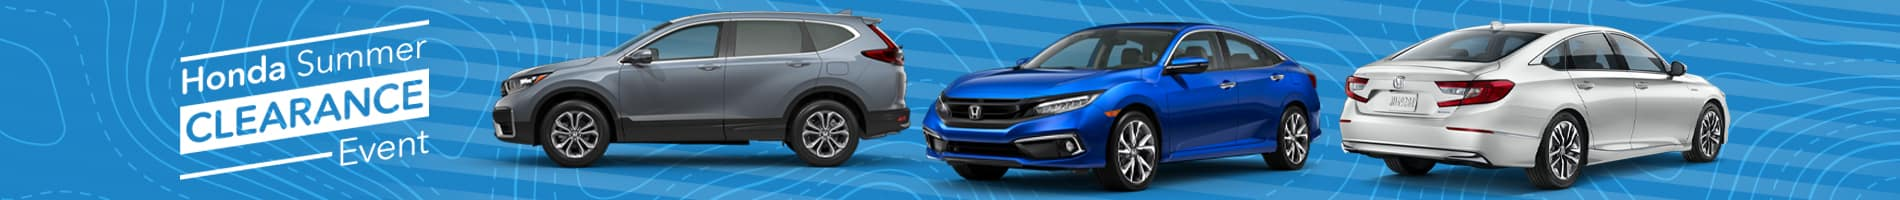 Honda Summer Clearance Sales Event in Fairfield